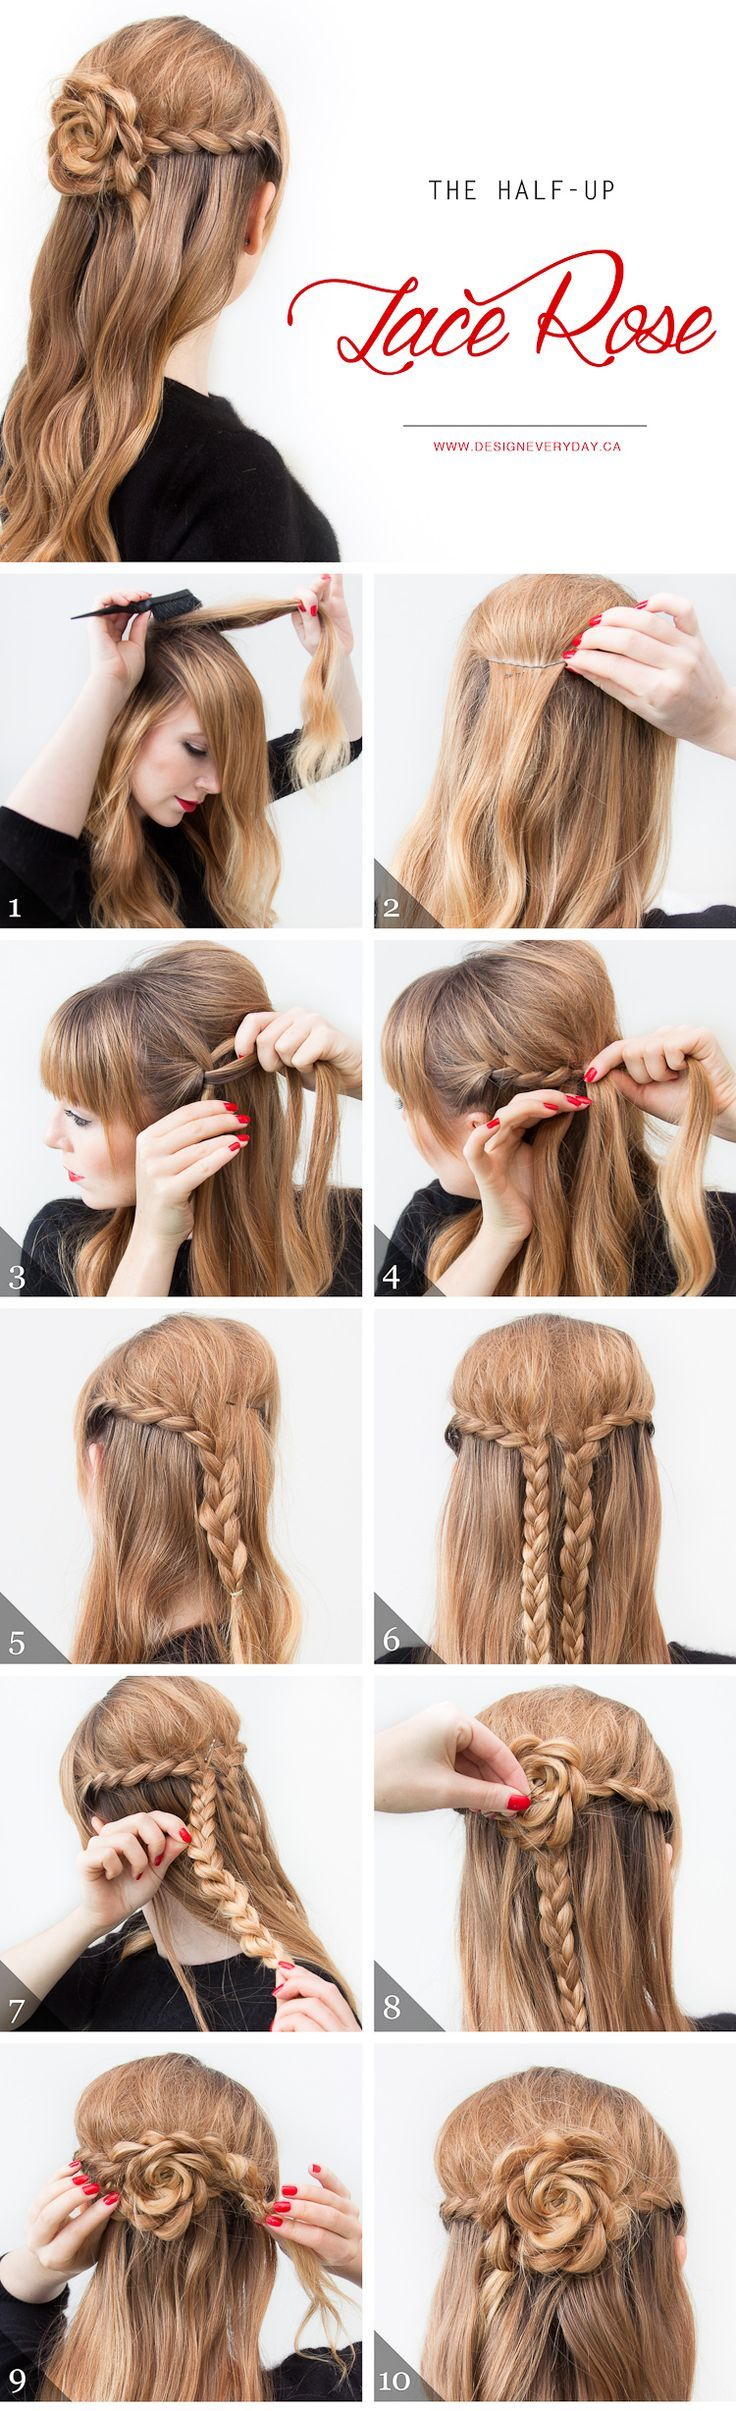 The Half Up Lace Rose Hairstyle Pictures, Photos, and Images